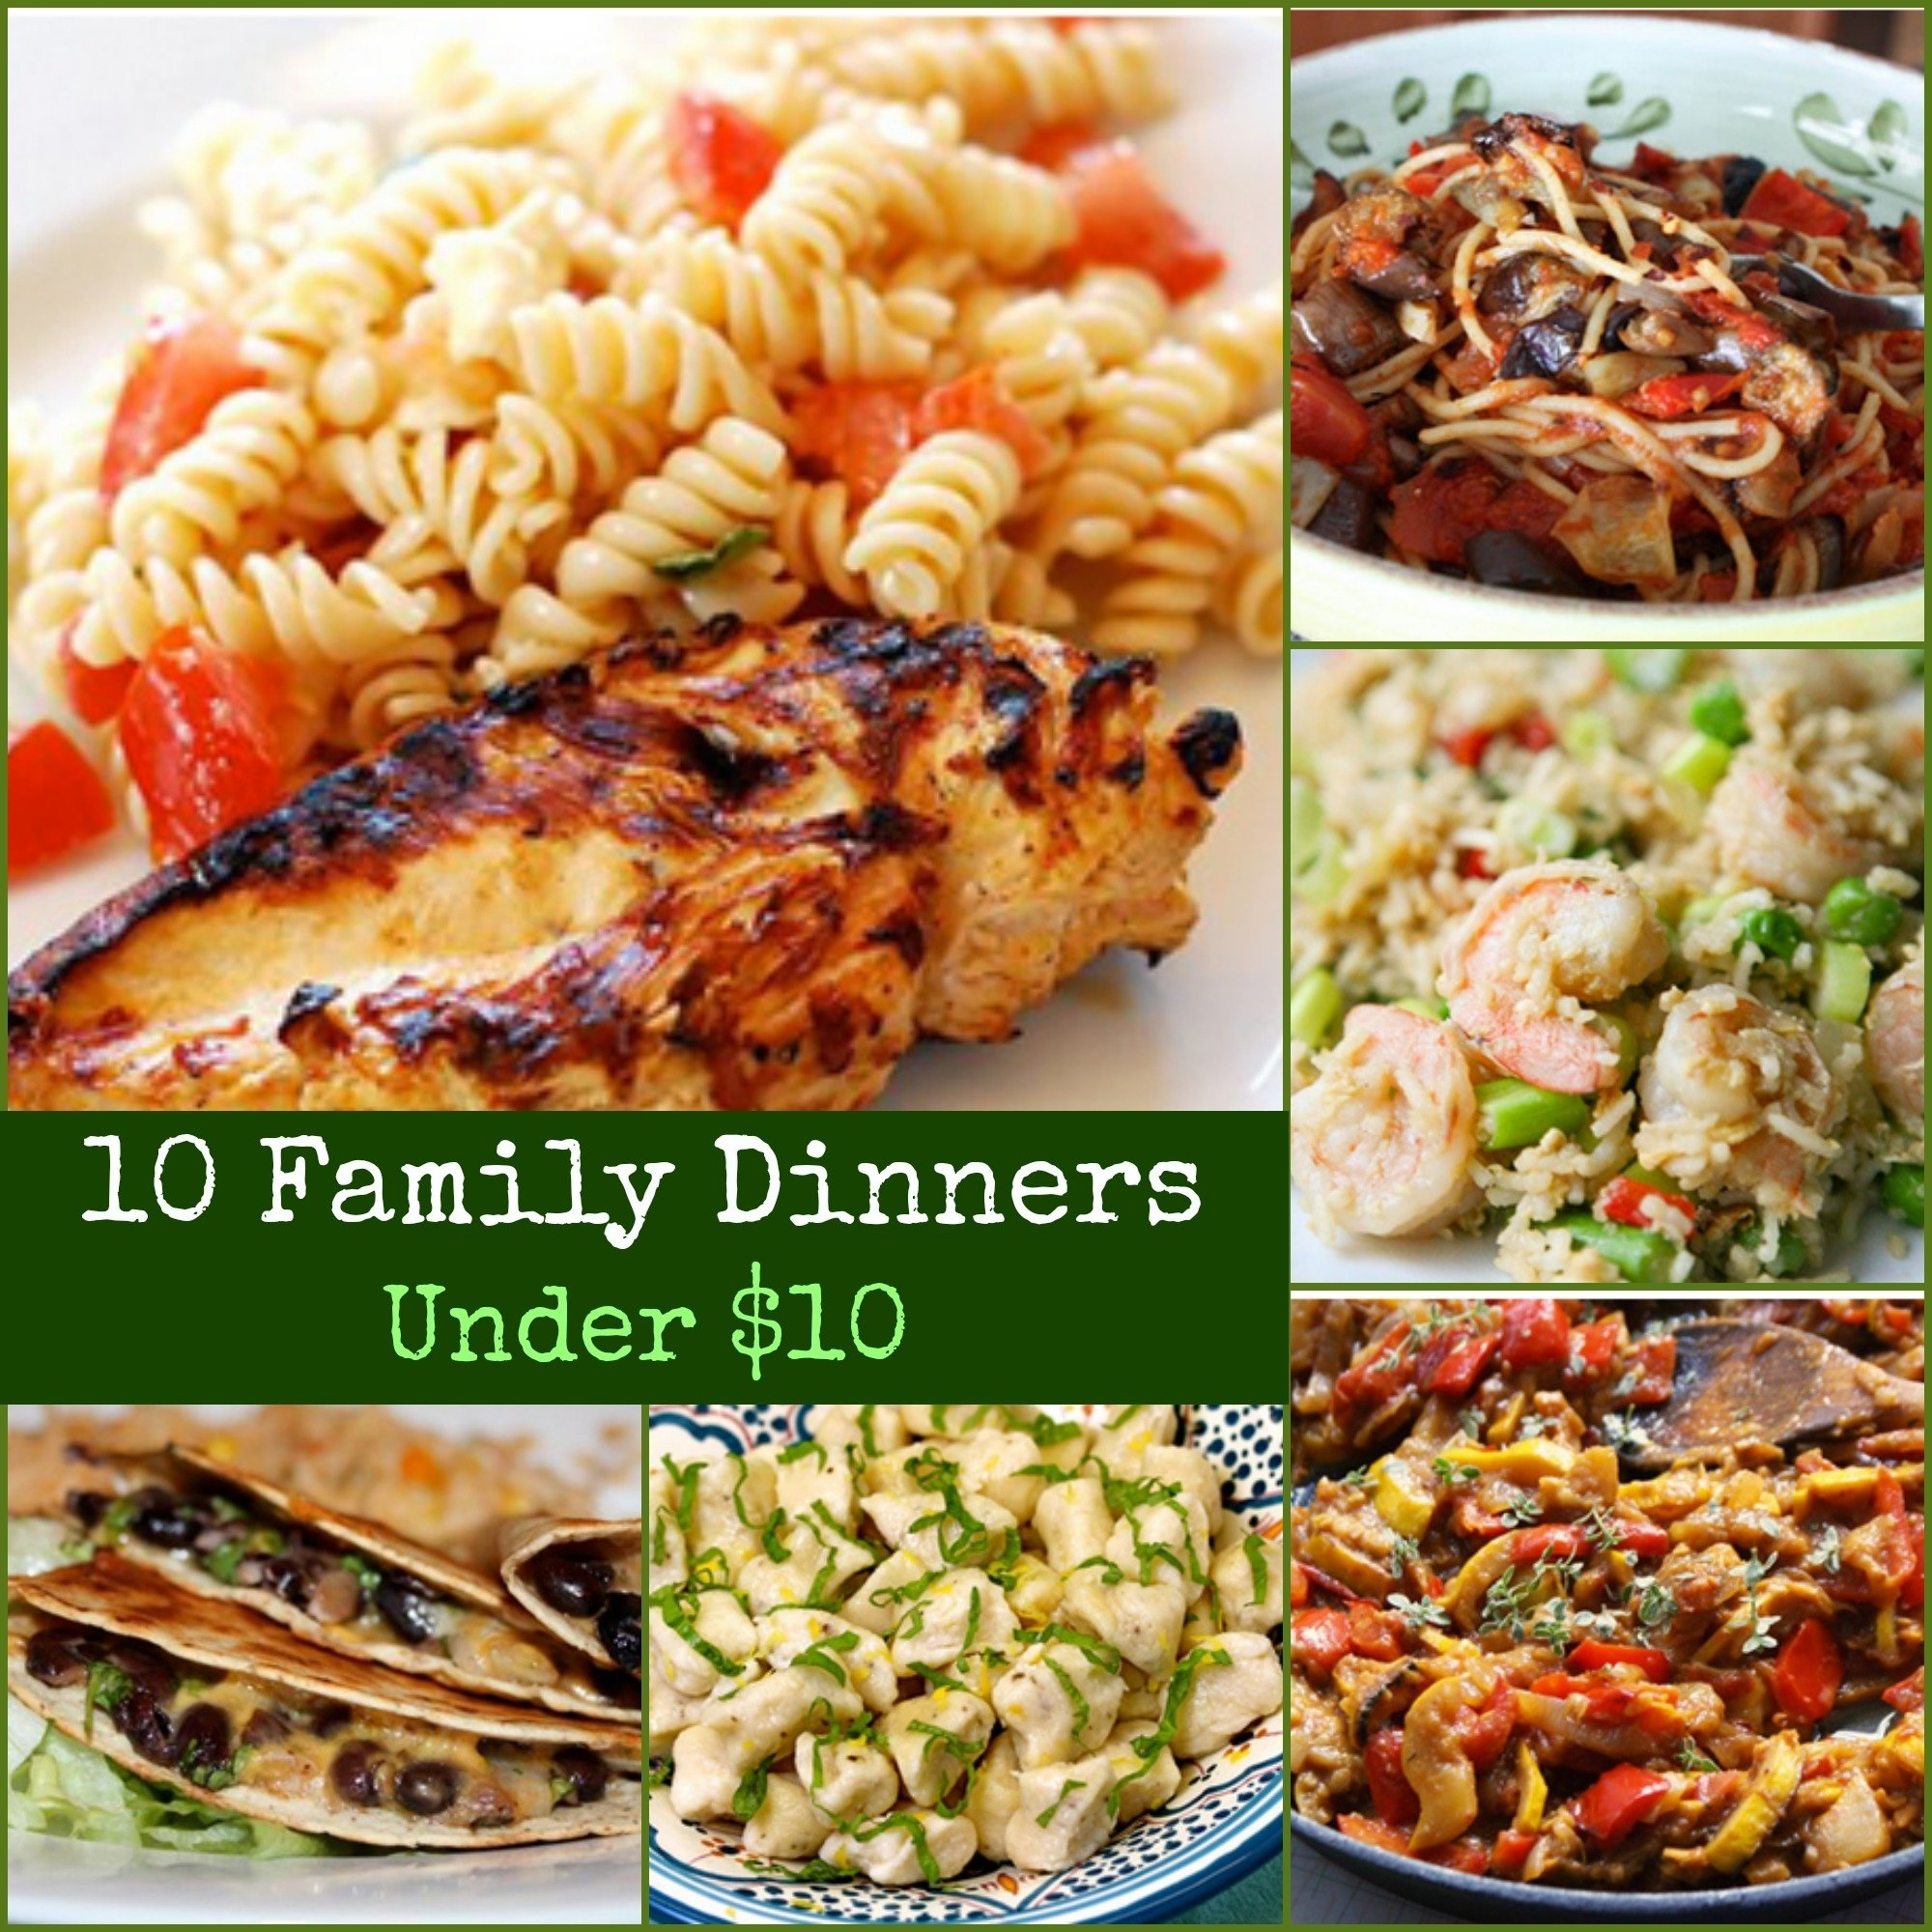 10 Amazing Cheap Meal Ideas For 4 download quick and easy kid friendly dinner recipes food photos 4 2021